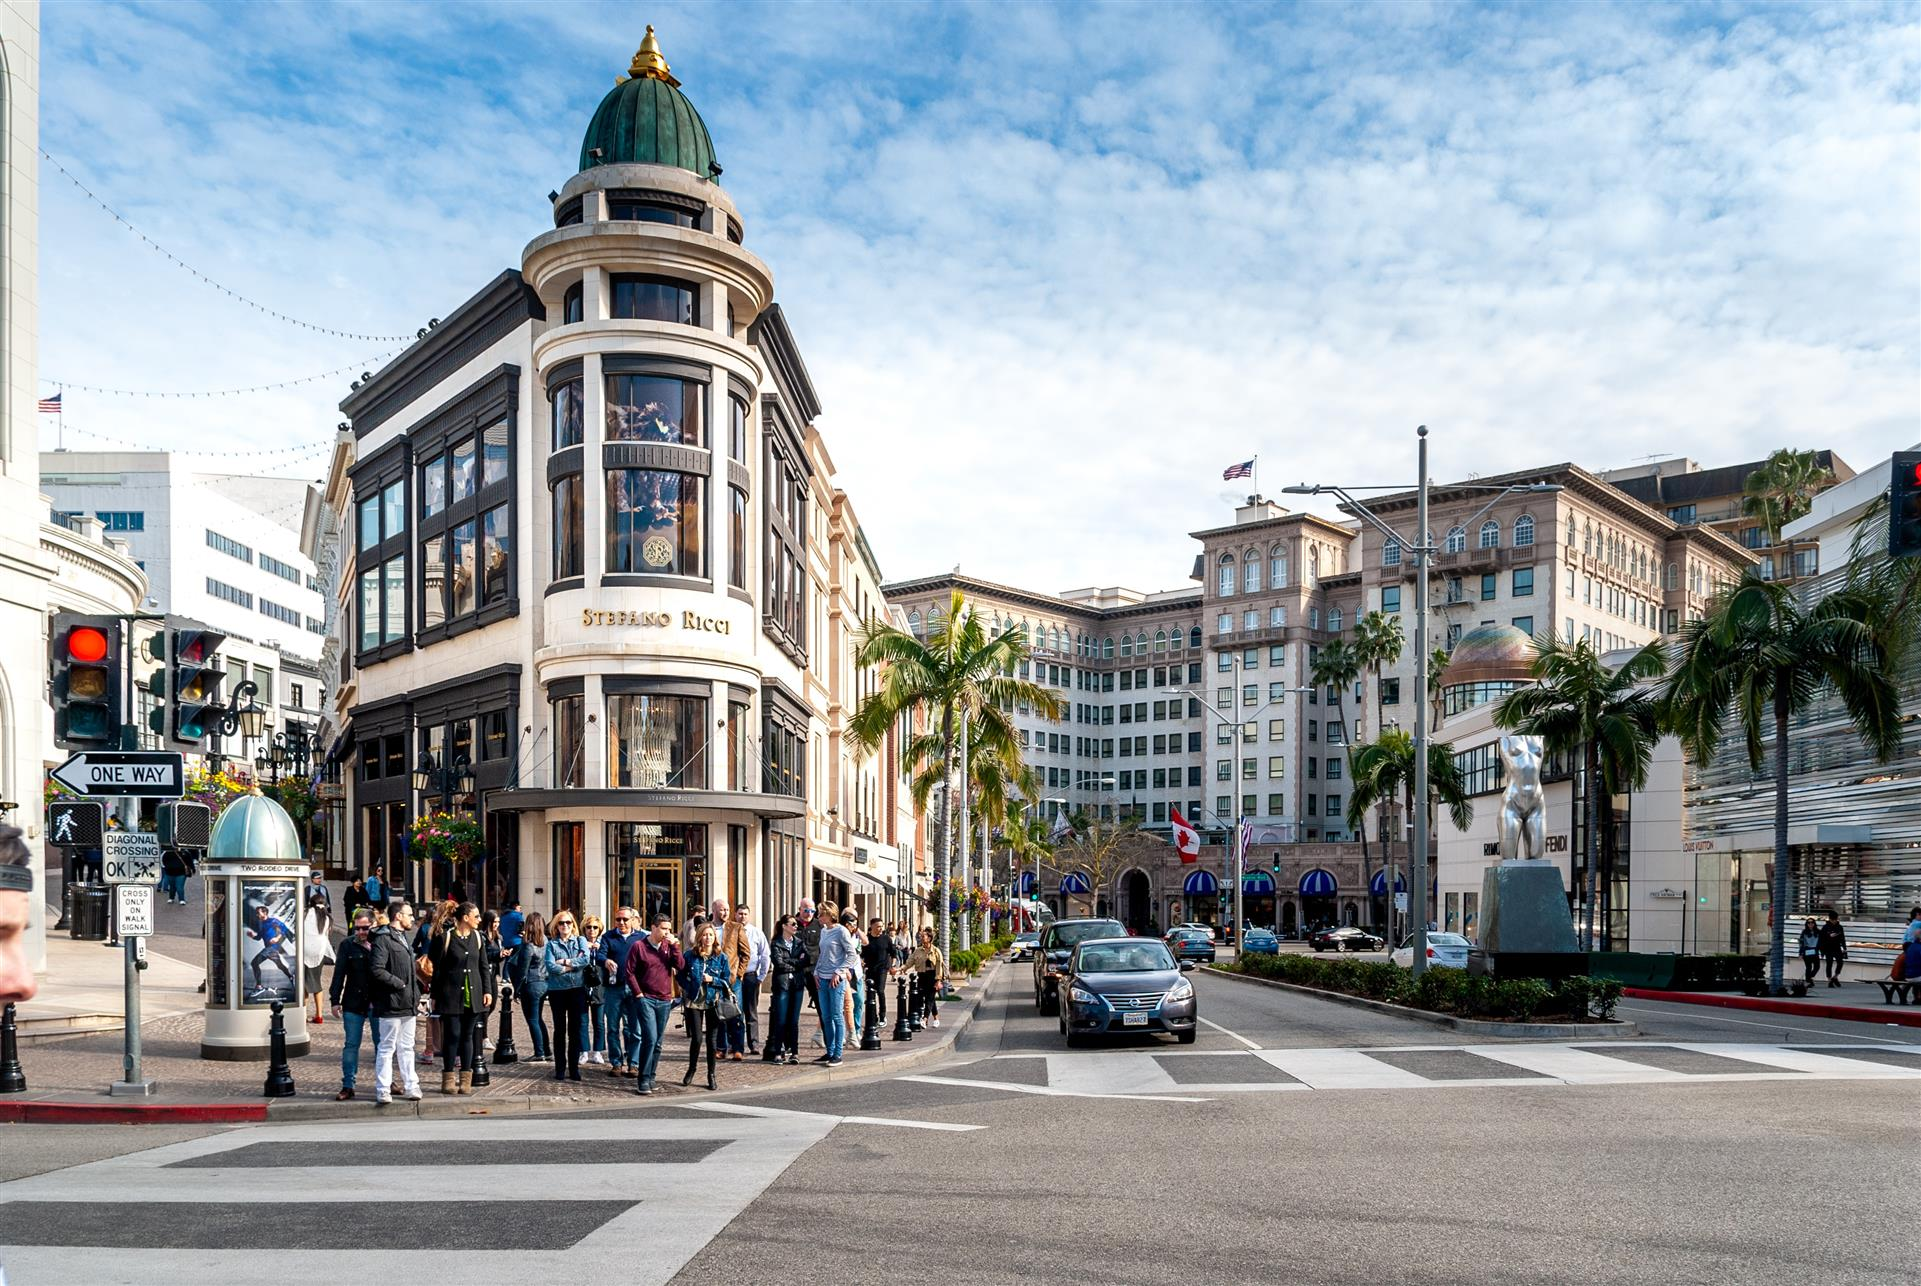 Rodeo drive intersection